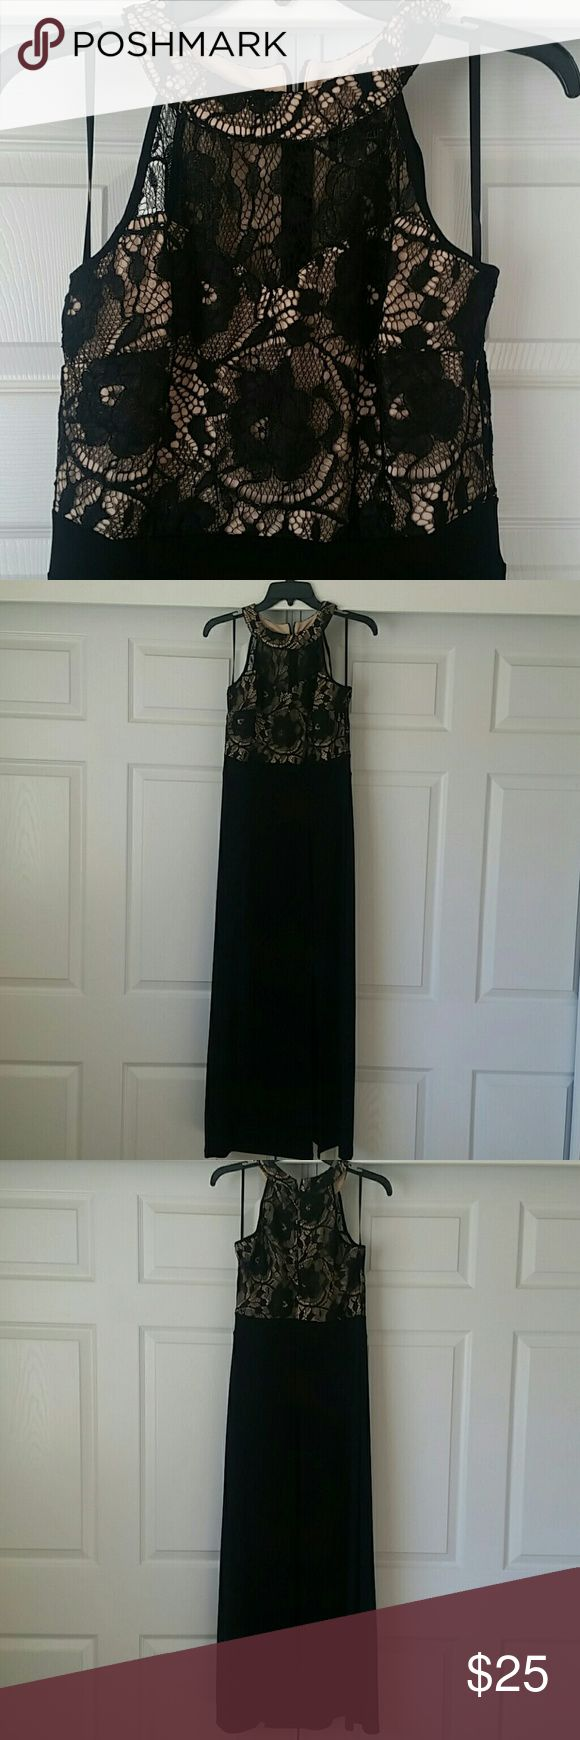 Black Lace & Nude Formal Dress Black lace and nude floor length dress. Hidden zipper at back, small slit on left leg. Fabric is stretchy.   16.5 inch bust, 46 inches long from arm pit.  ?Feel free to make an offer using the offer link?  ?No Trades? Dresses